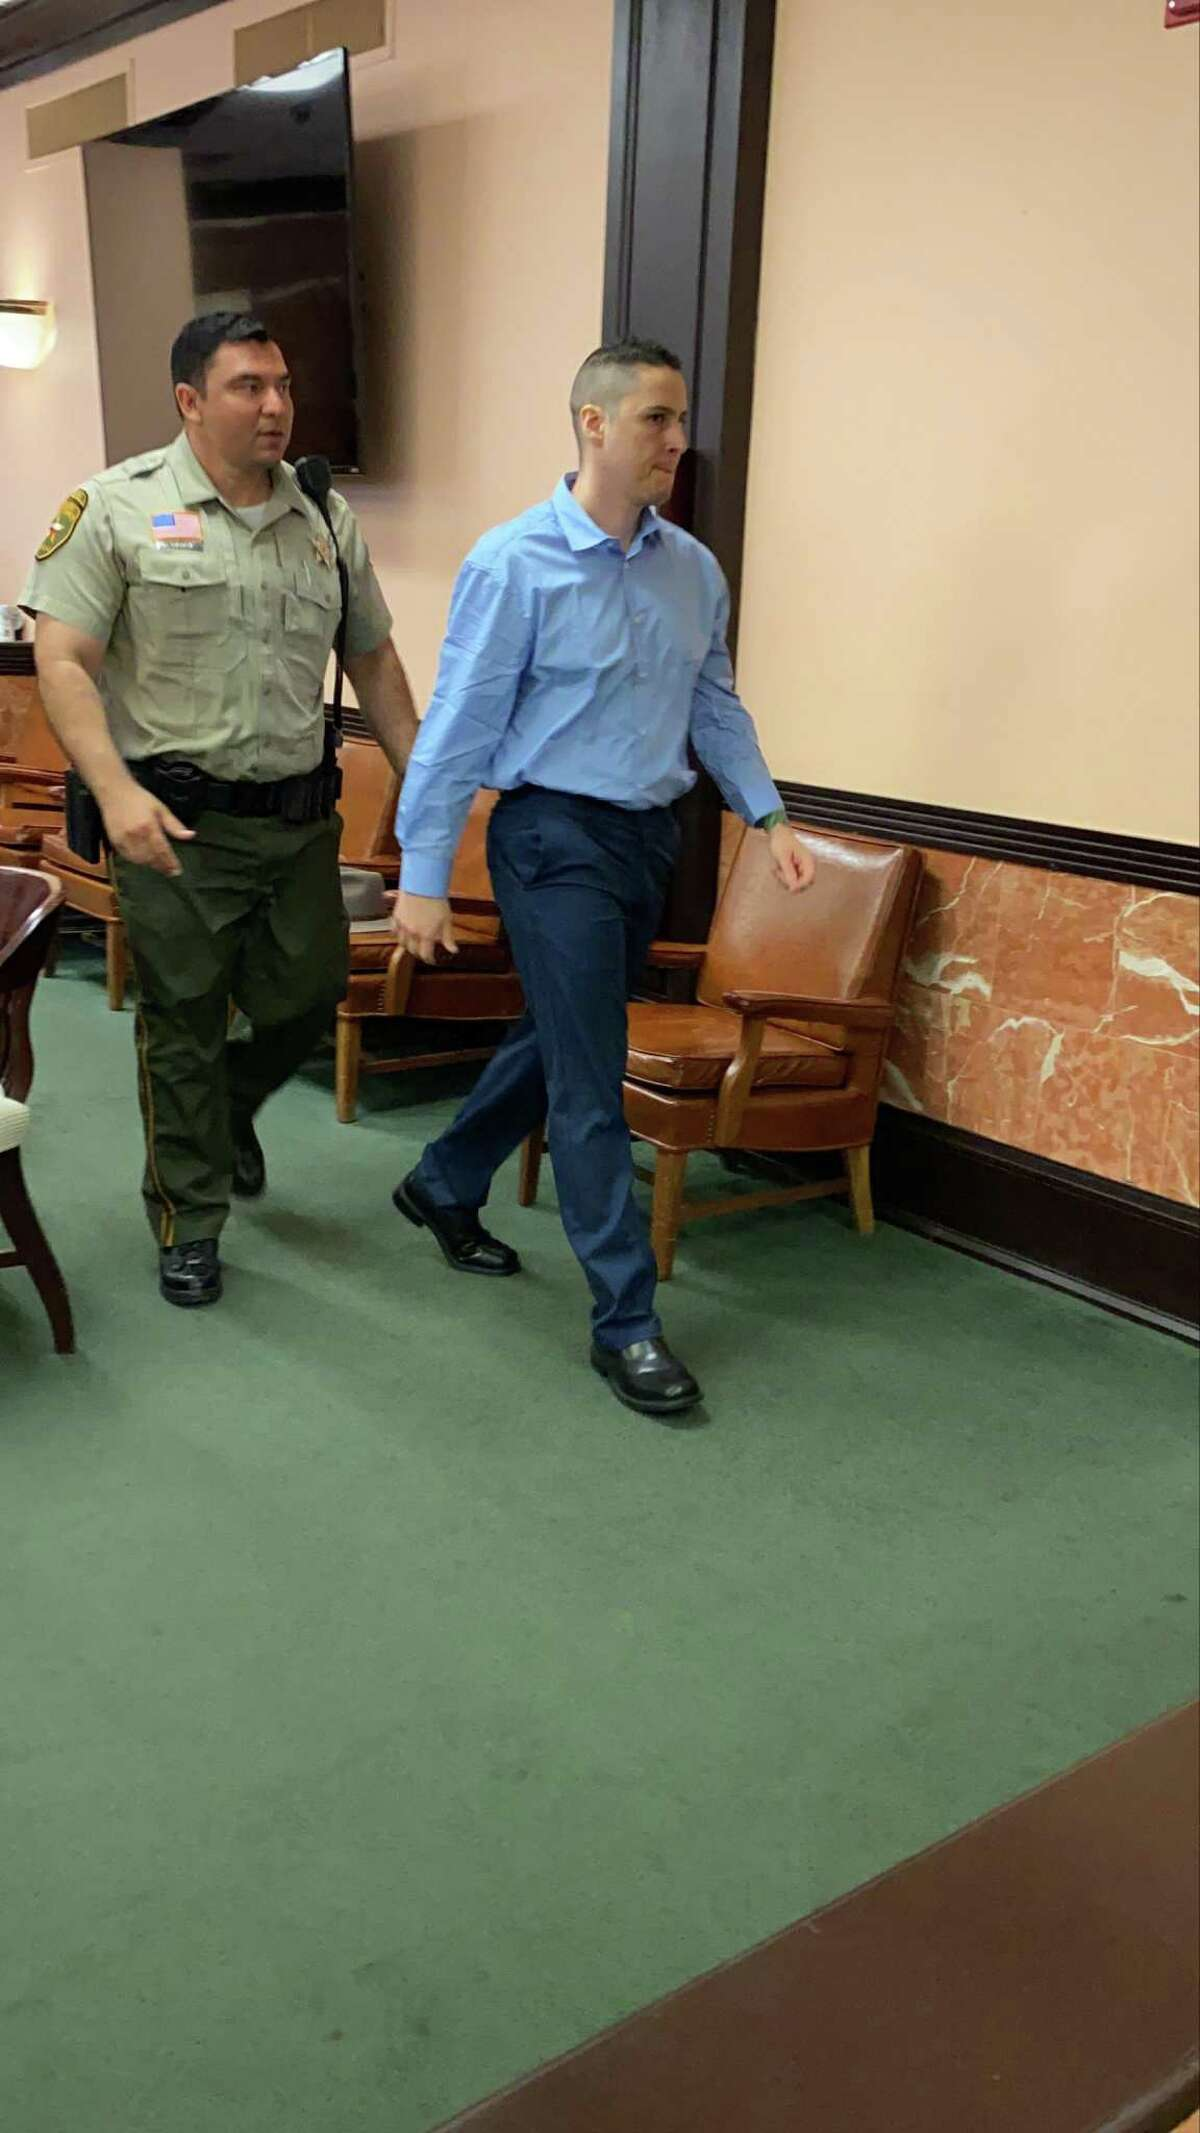 Ronald Anthony Burgos-Aviles left the 49th District Court Thursday after his third motion to remove his counsel was denied.